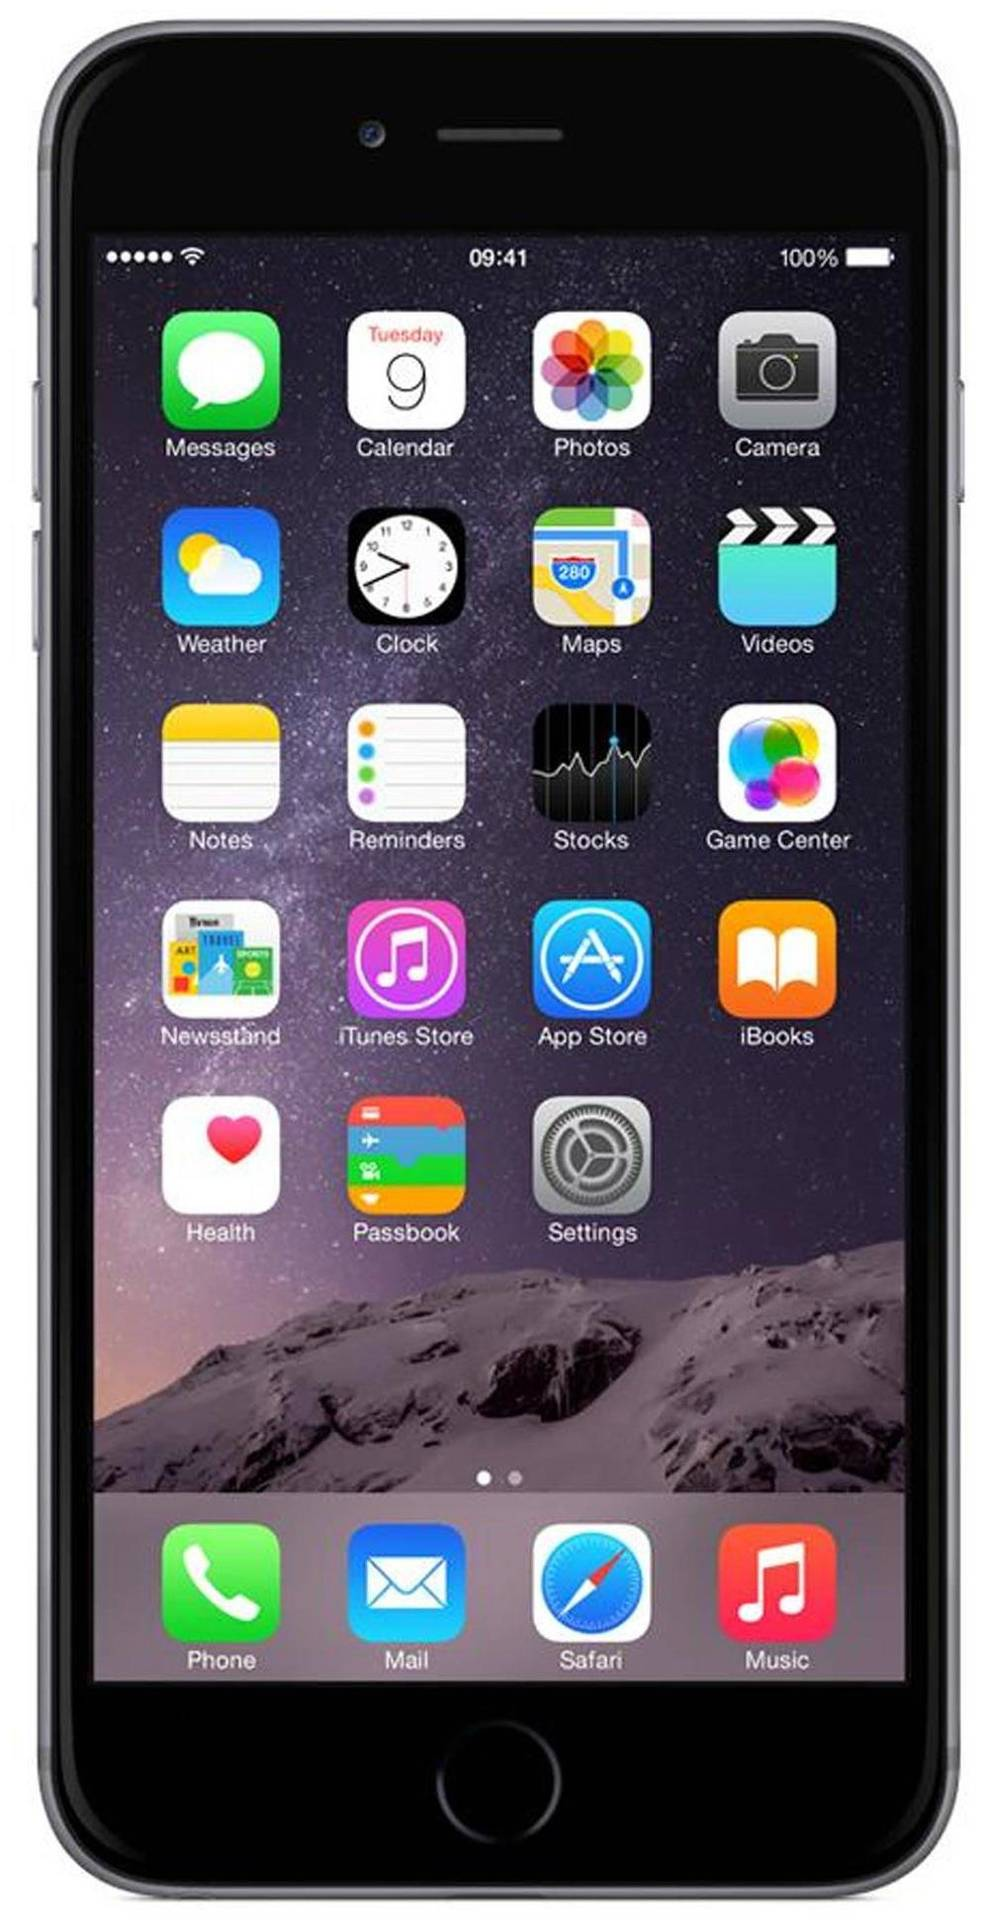 [Lowest] Apple iPhone 6 32 GB + Free Ambrane 10000 maH Power Bank Effectively